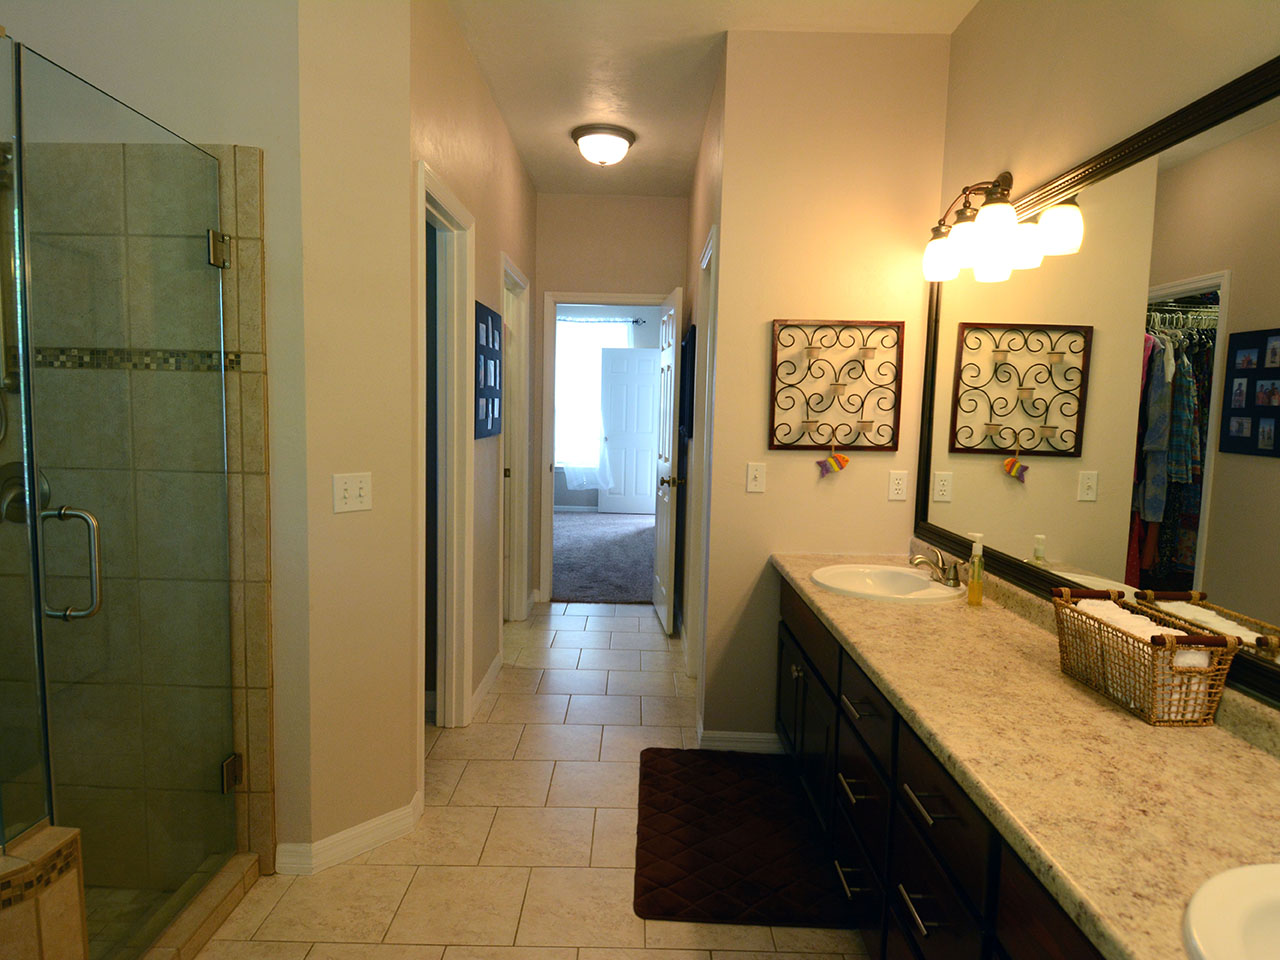 Bathroom with glass shower enclosure, double sink vanity, tile floor and a separated water closet and closet